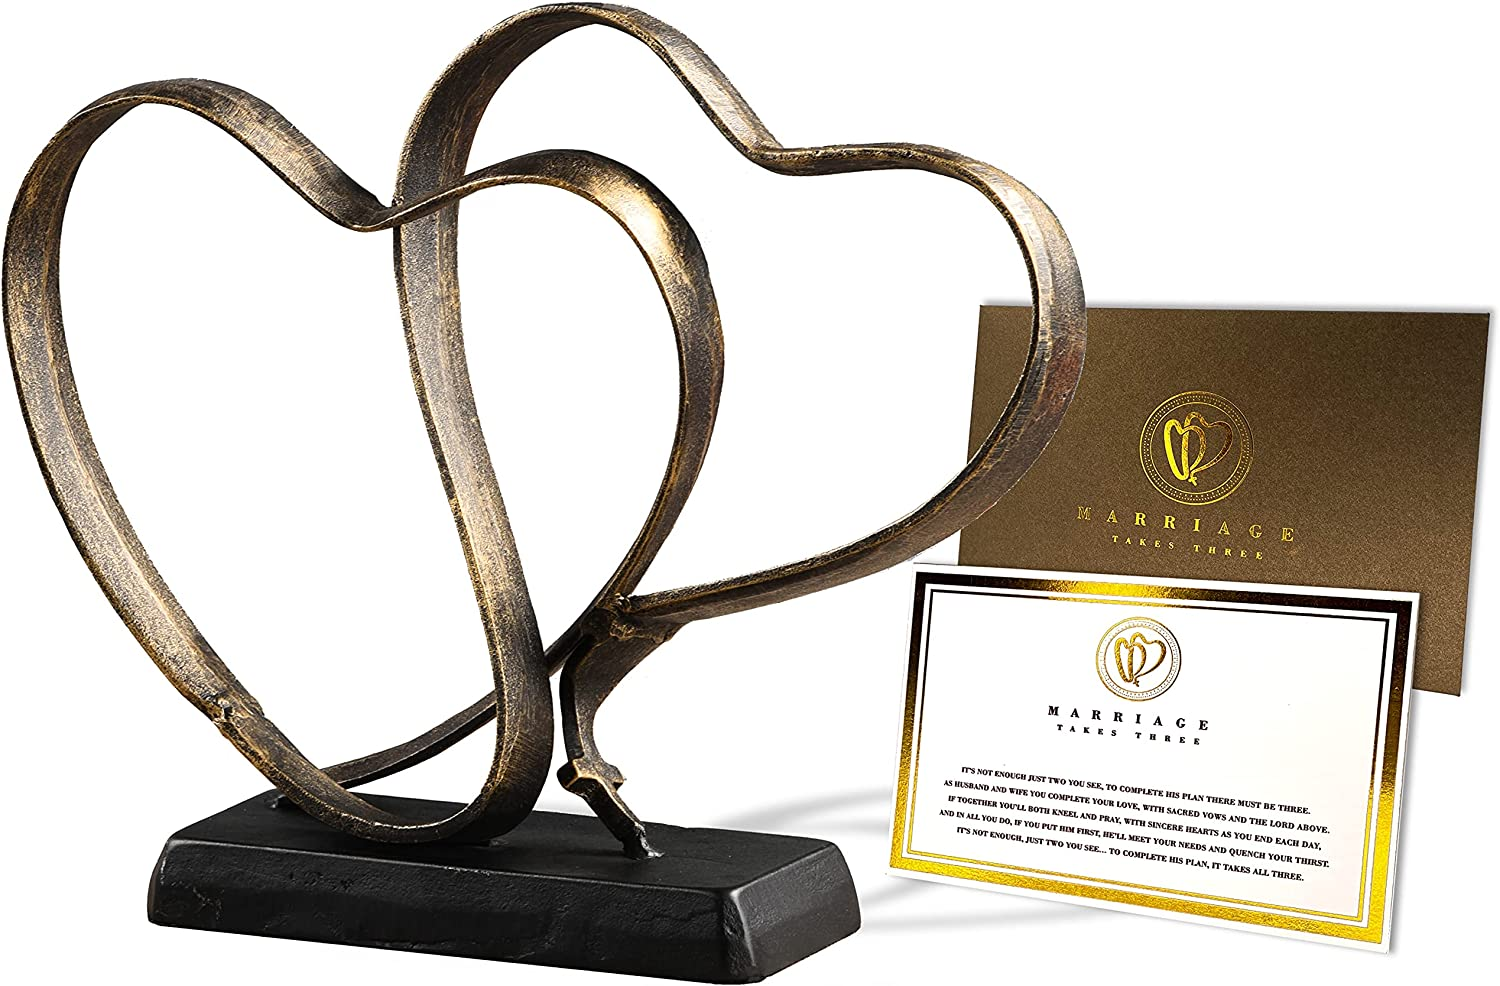 Wedding Anniversary Couples Gift - Two Hearts and Cross Iron Sculpture, Marriage Takes Three Christian Decor, 10.8 x 9.5 Inches, Includes Poem Card